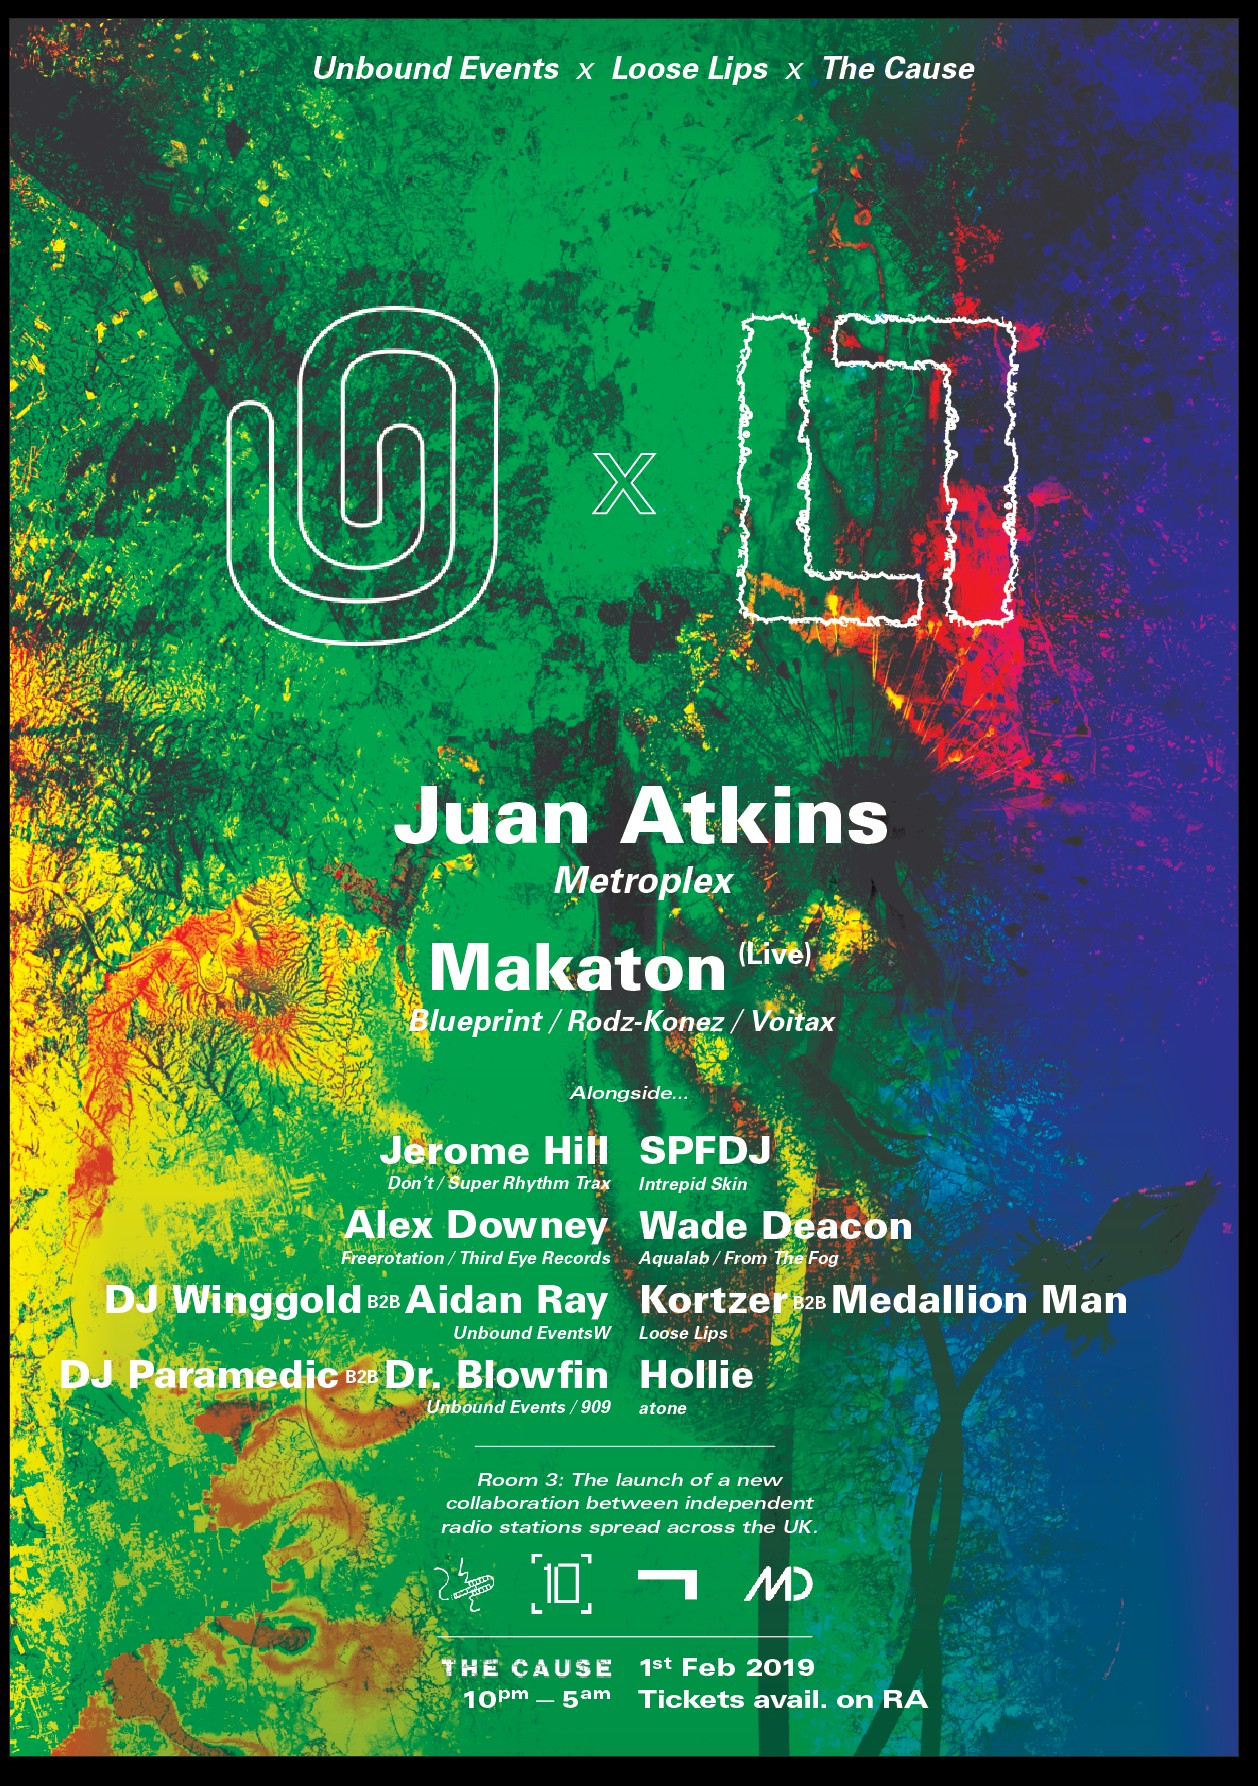 Loose Lips x Unbound with Juan Atkins, SPFDJ, Makaton, Alex Downey + more...